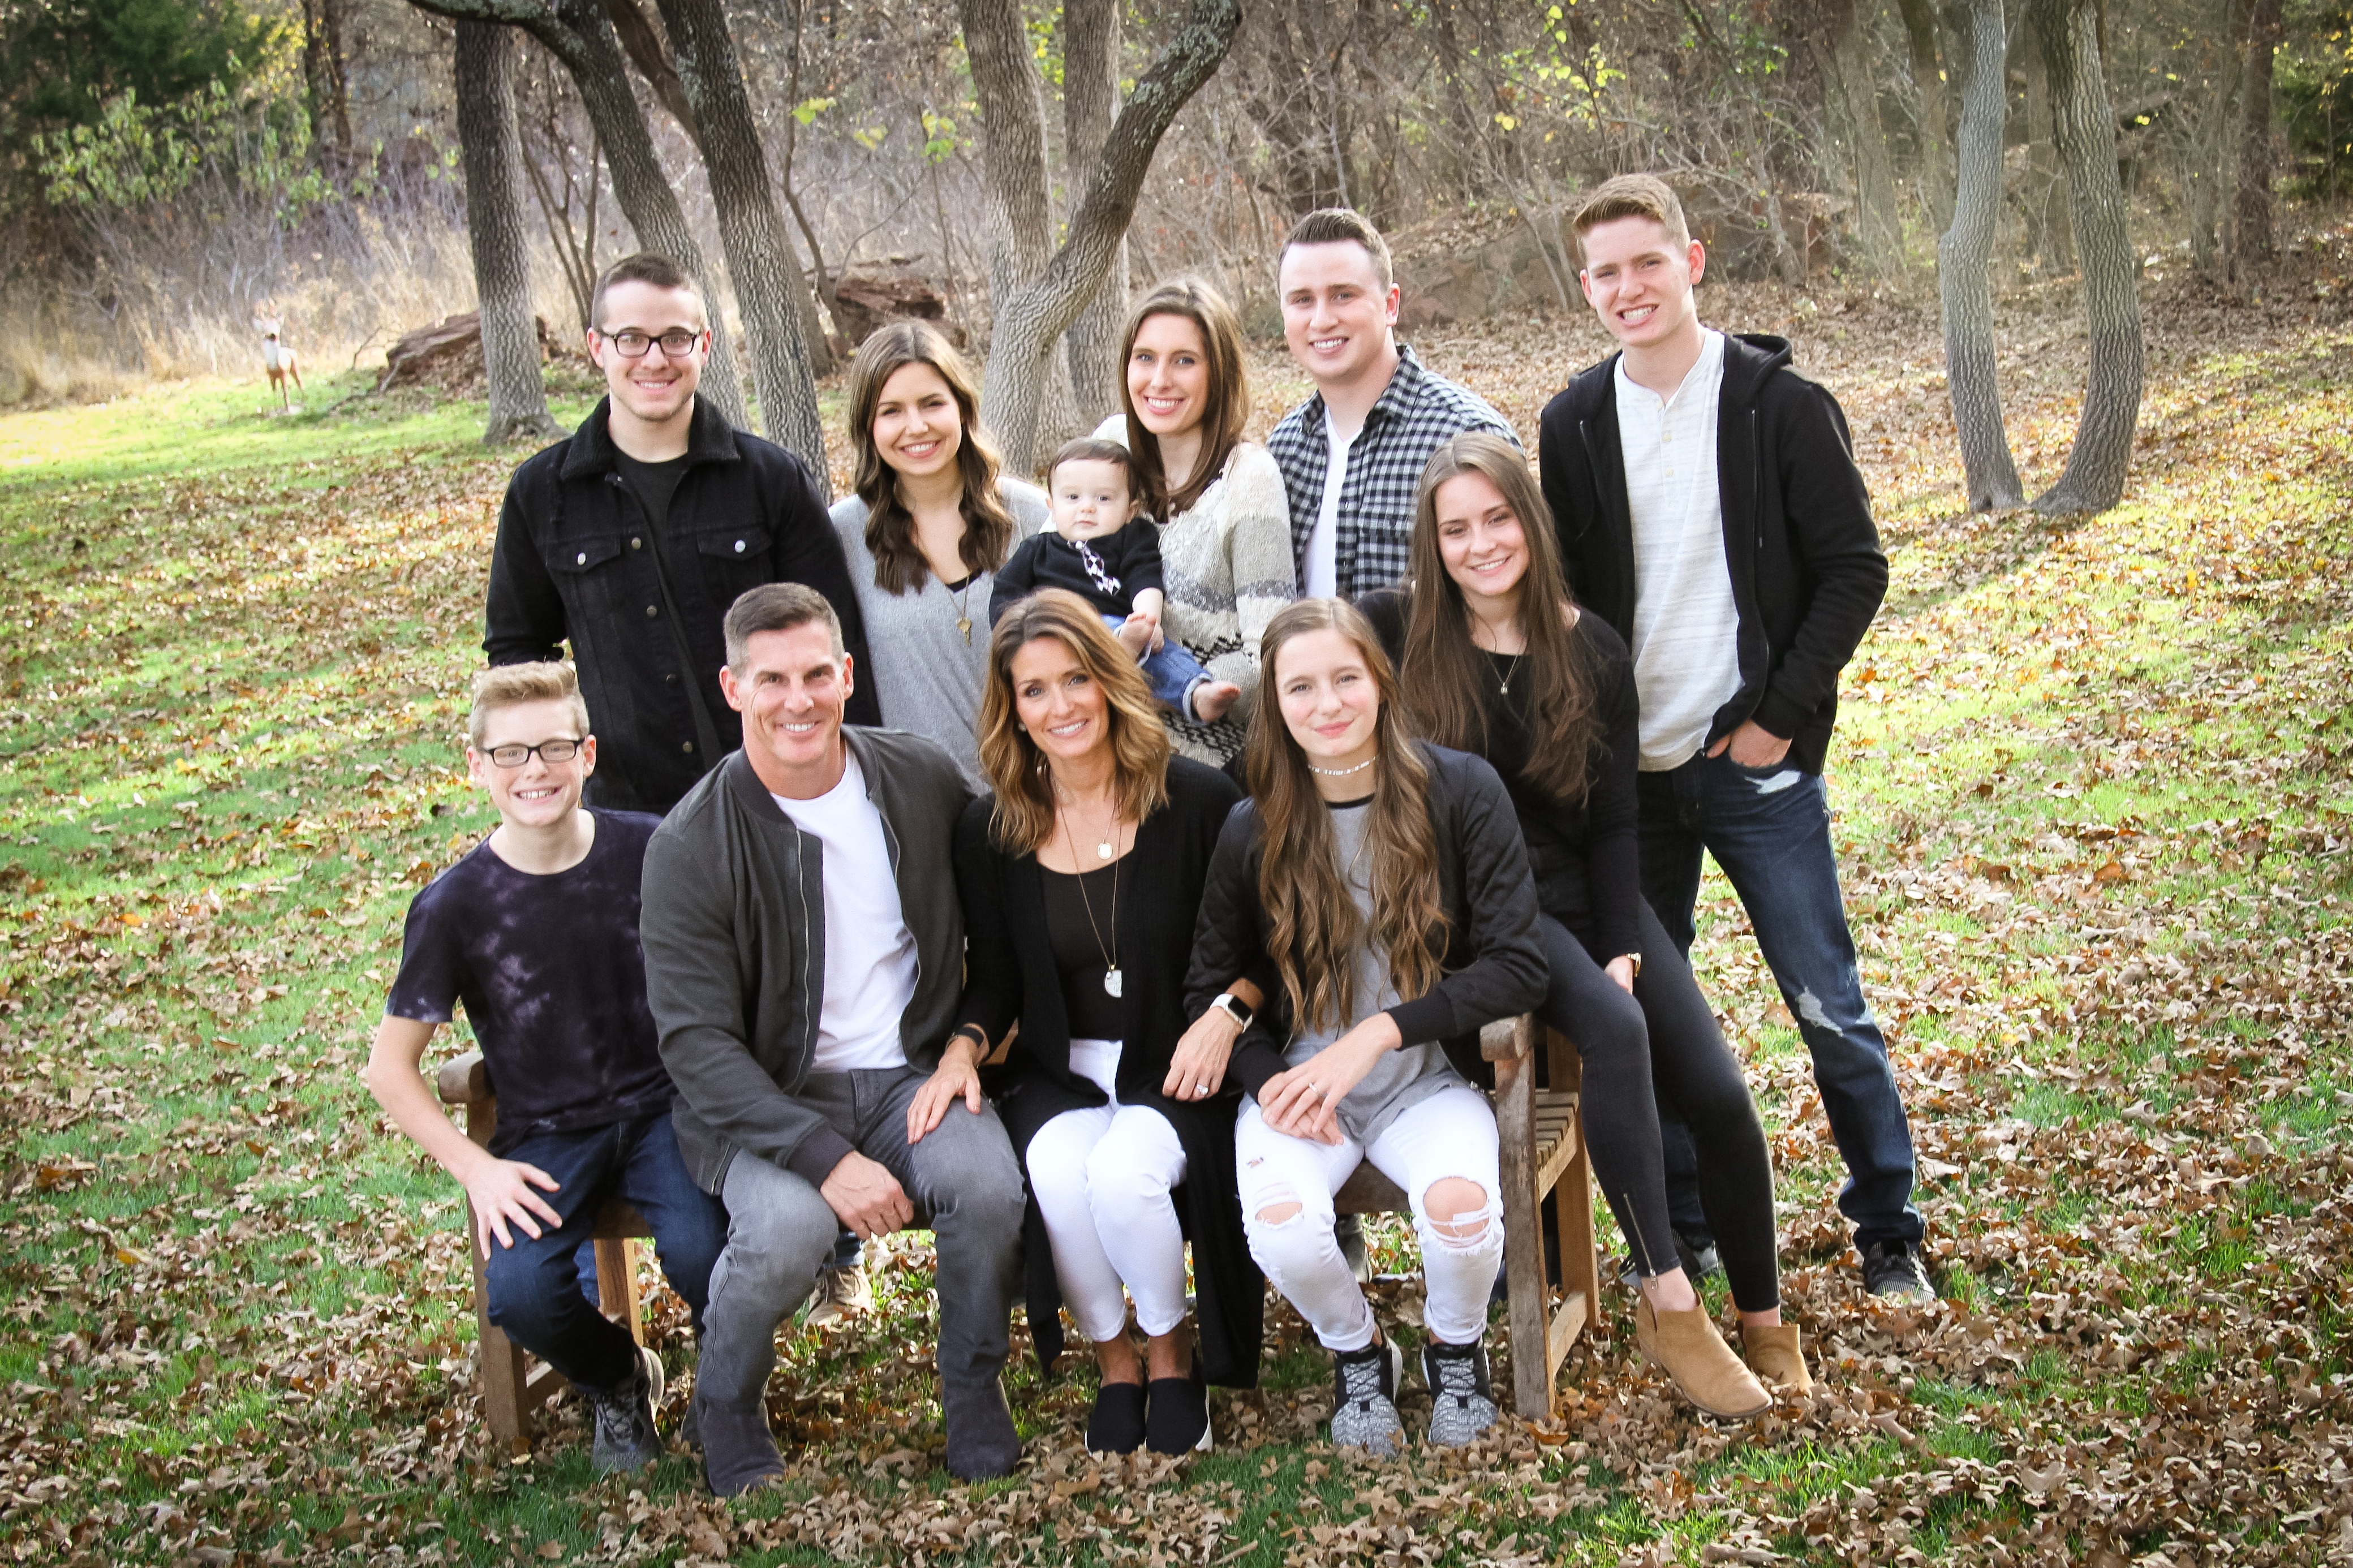 Criag Groeschel and family